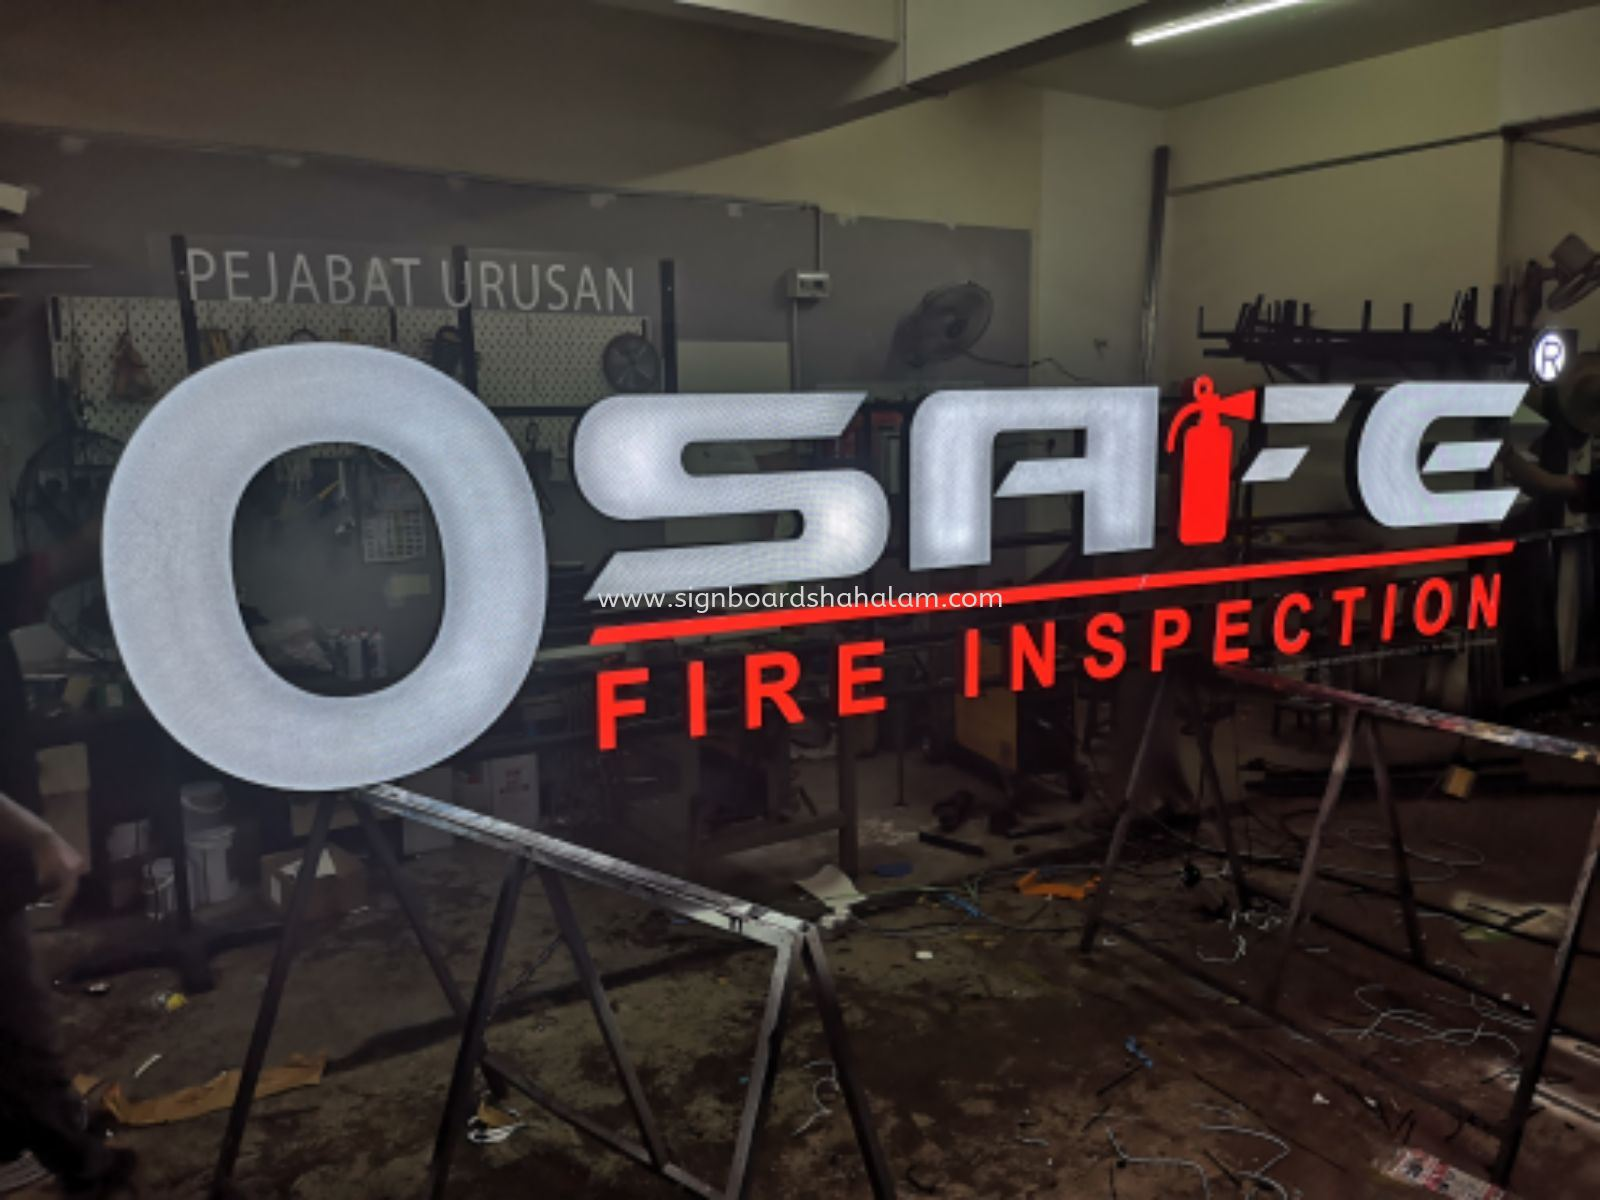 O SAFE FIRE INSPECTION 3D LED SIGNAGE